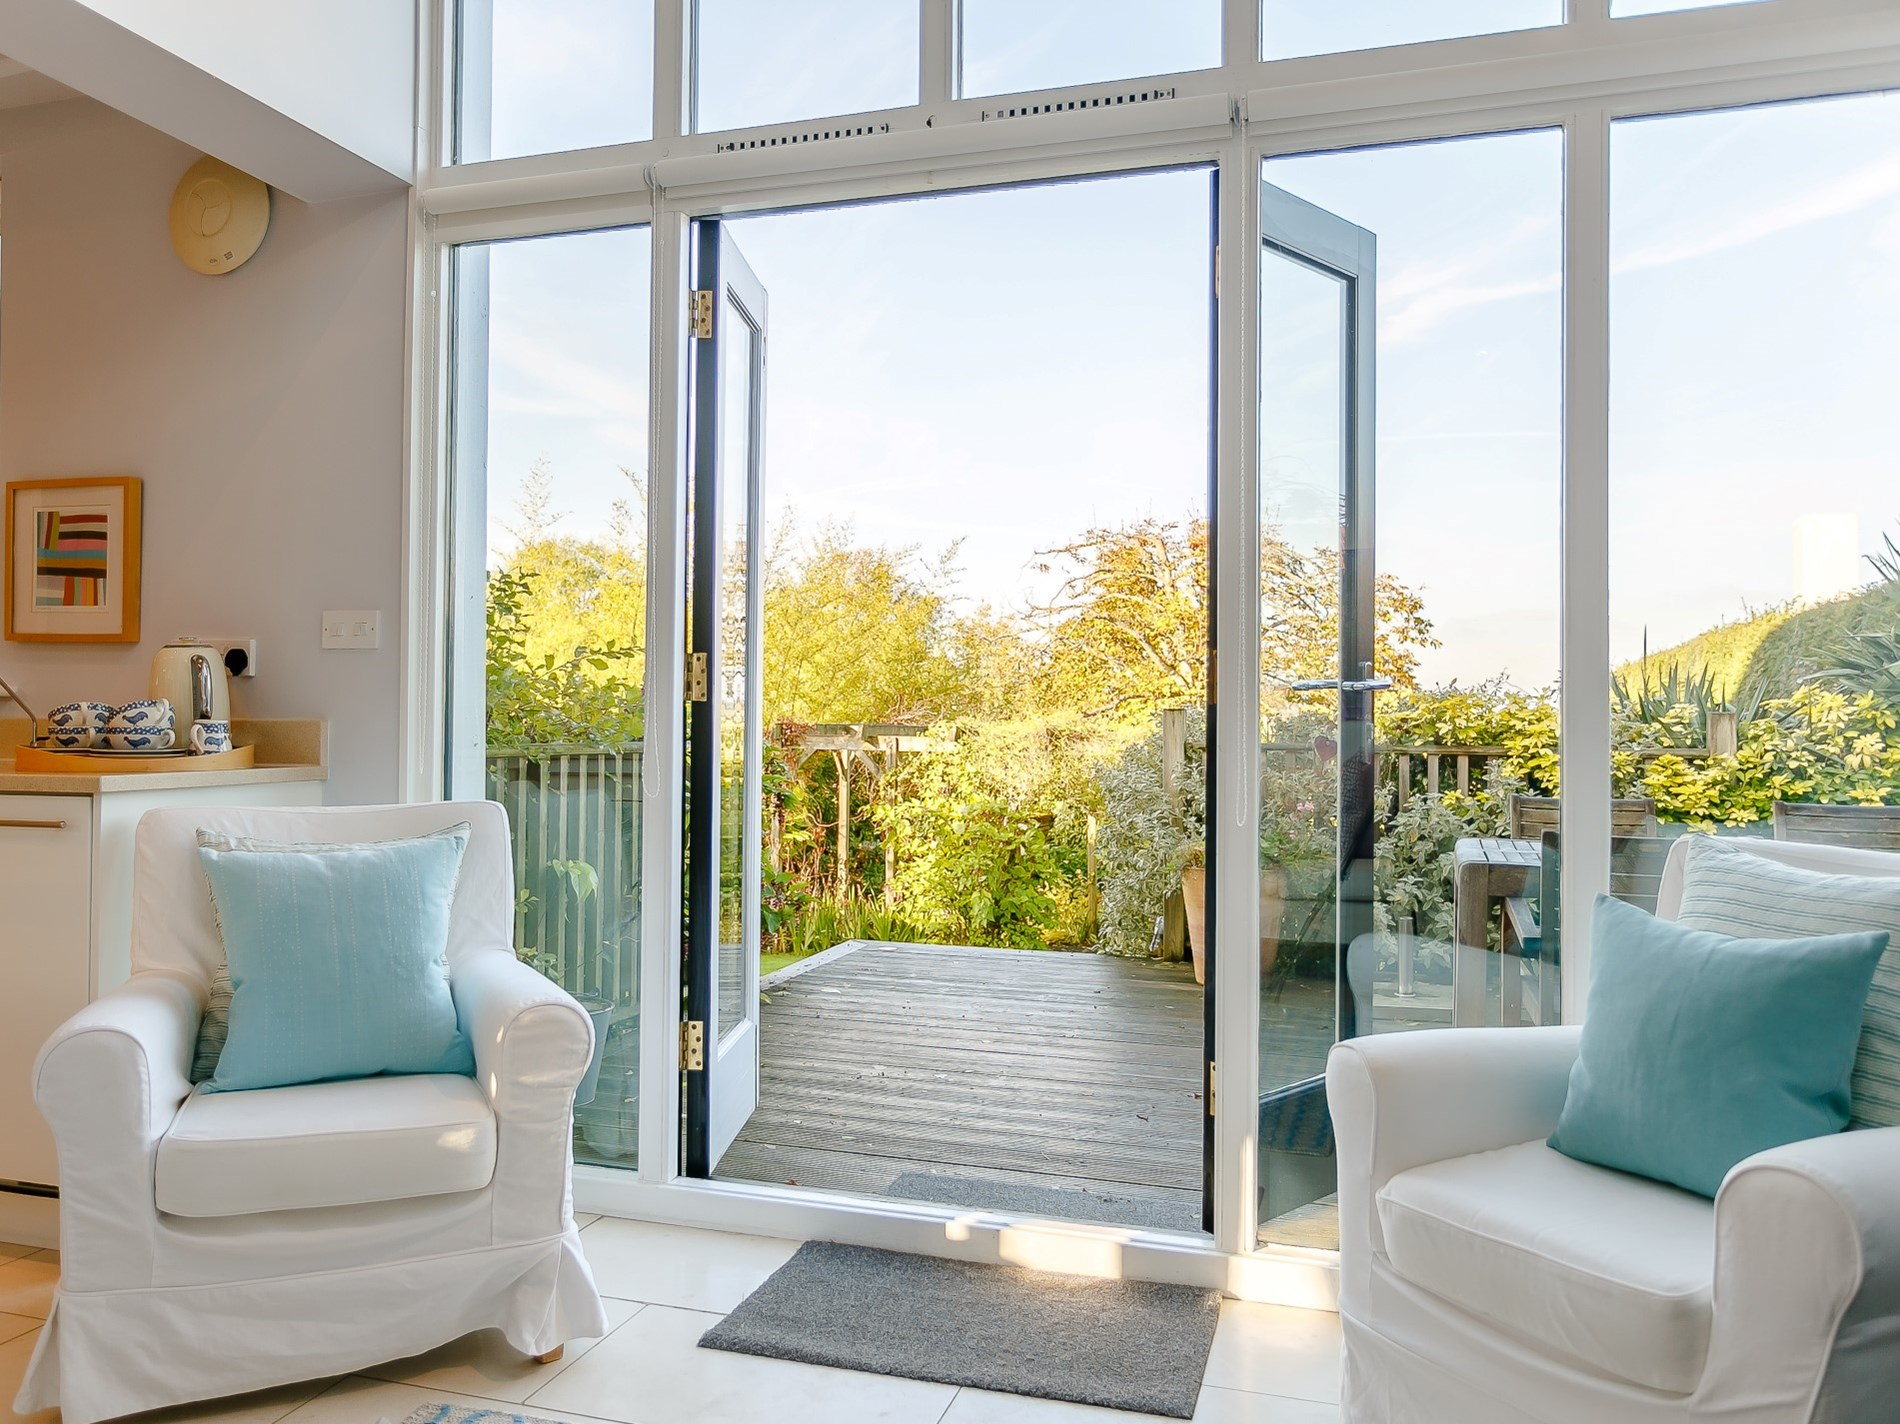 Patio doors lead out to the garden